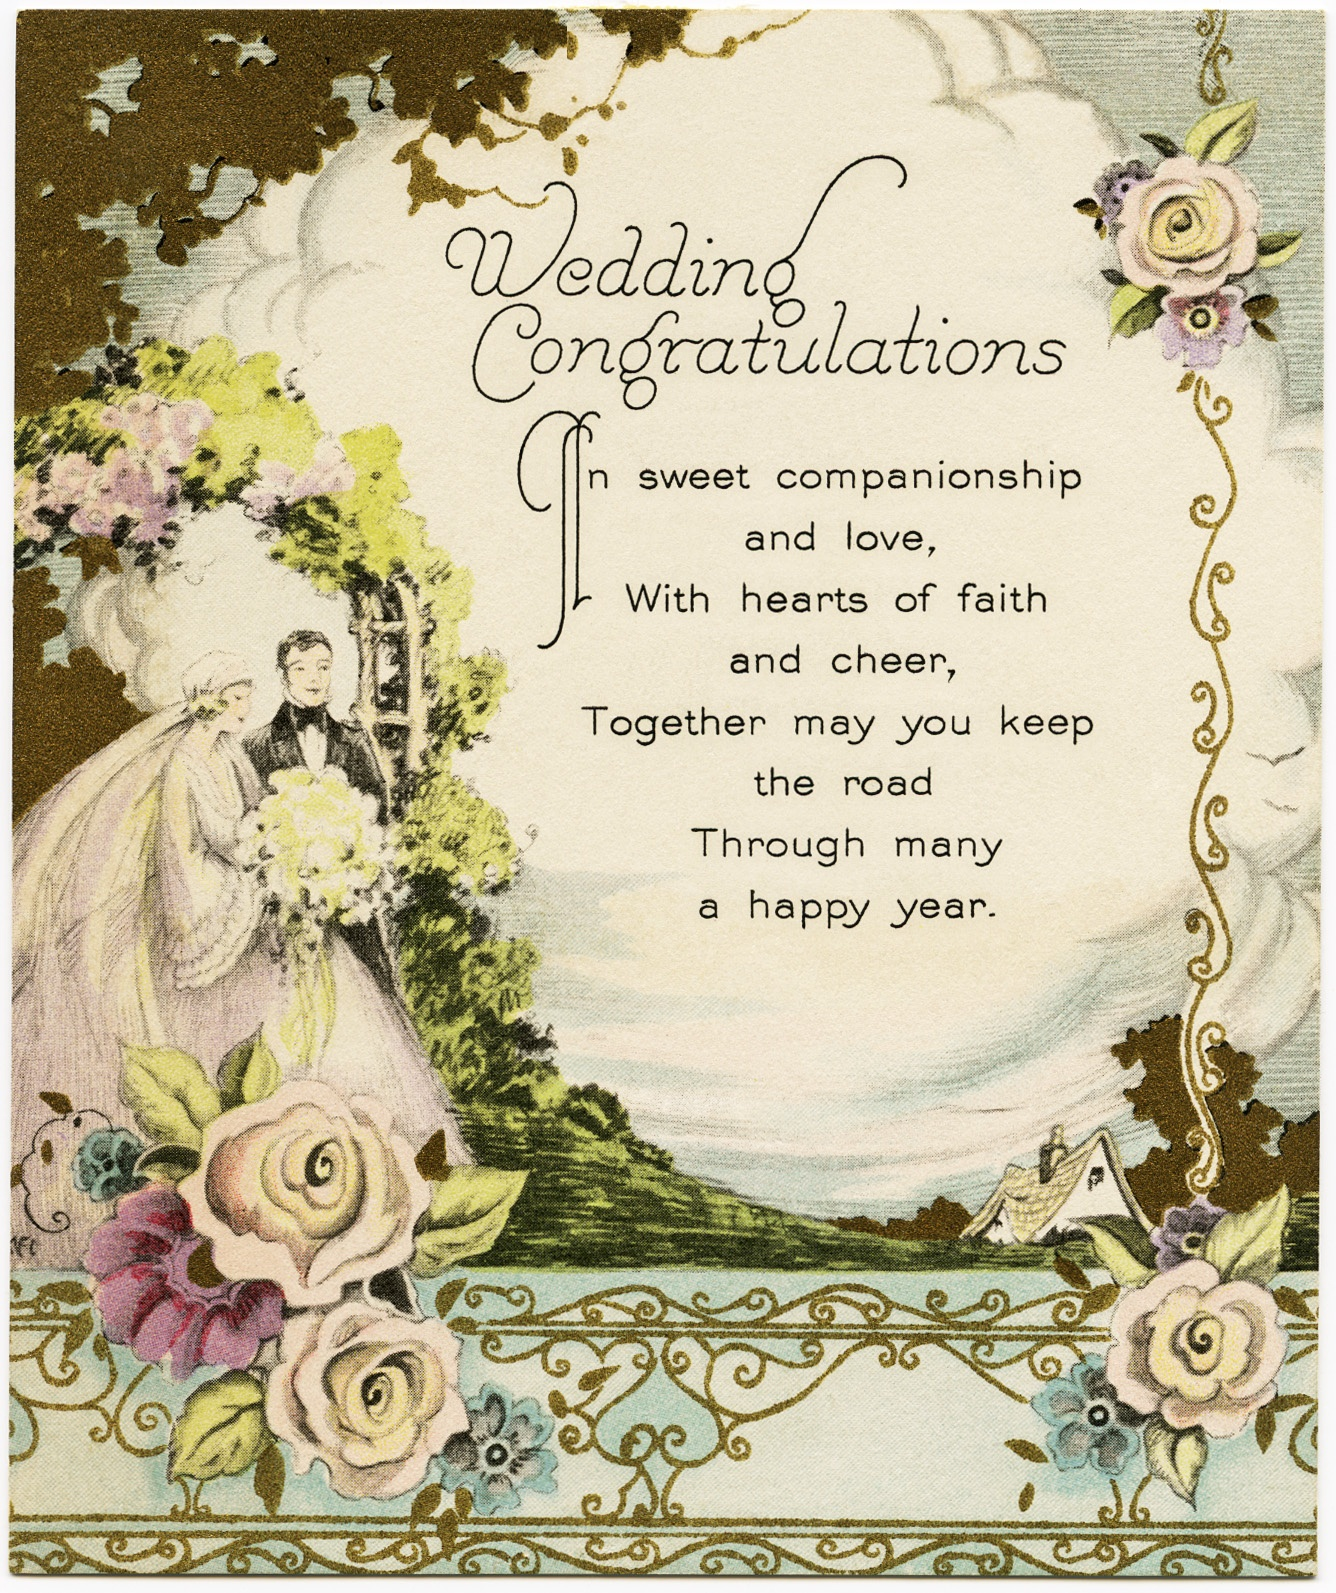 Vintage Wedding Congratulations - Old Design Shop Blog - Wedding Wish Cards Printable Free